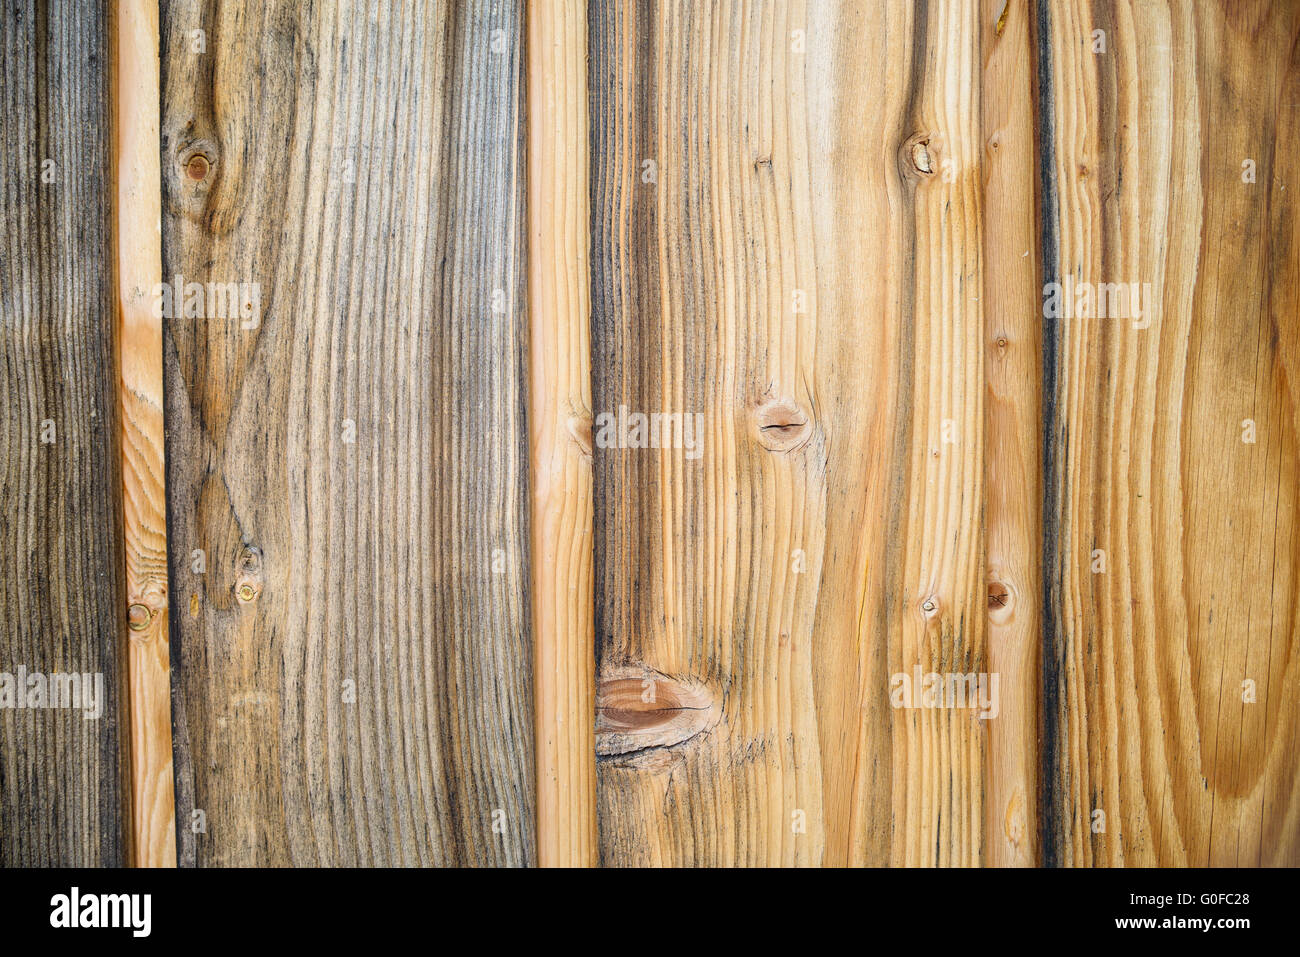 Wood Background Texture. Rustic weathered barn wood background with knots and scratches - Stock Image